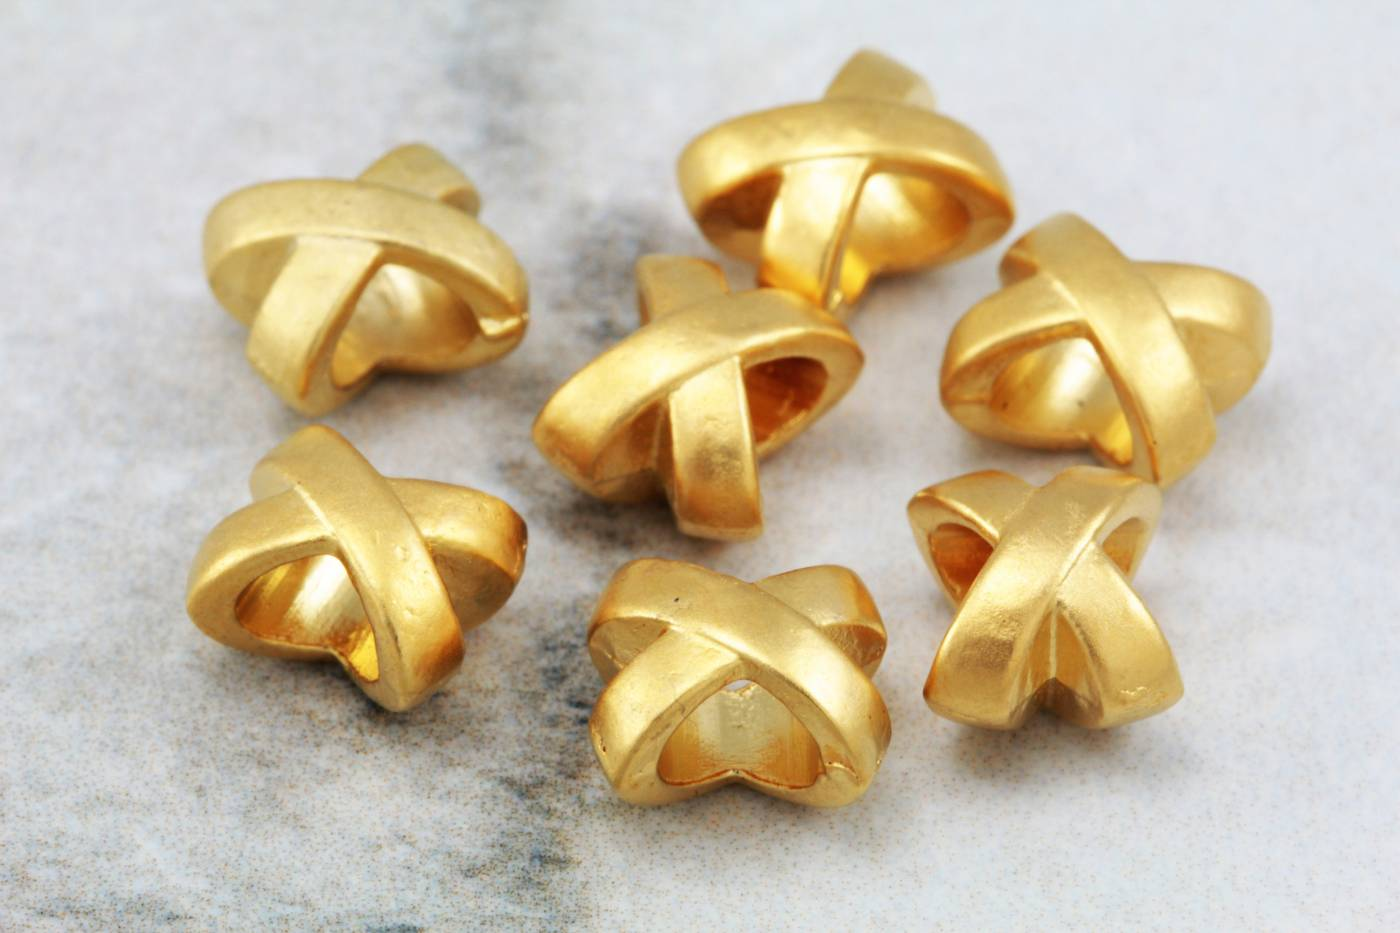 gold-charms-cchange-jewelry-supplies.jpg